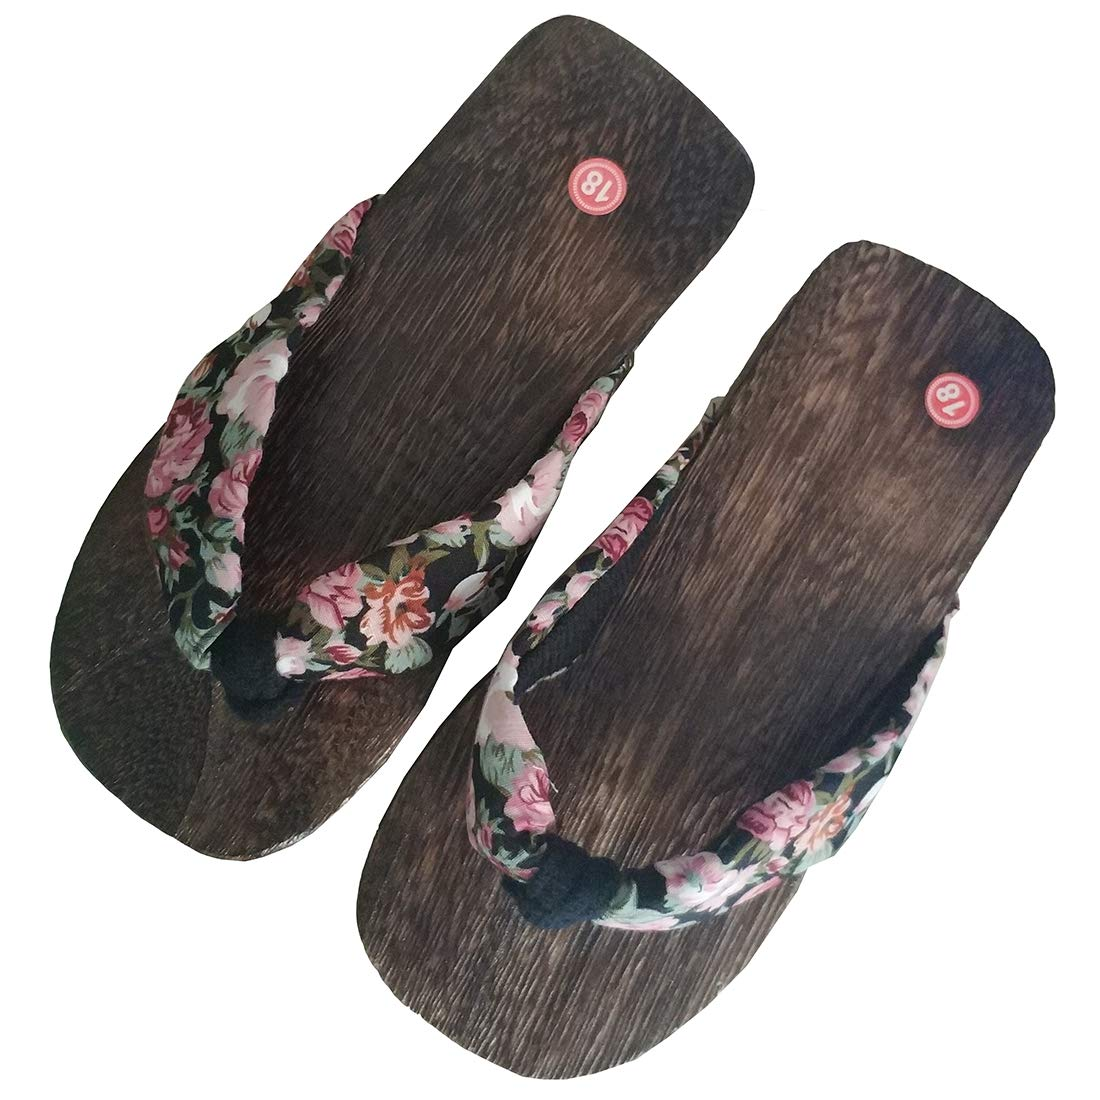 5dbf1a33157e Amazon.com  Ez-sofei Women s Girls Kids Japanese Traditional Wooden Shoes  Floral Geta Sandals  Shoes